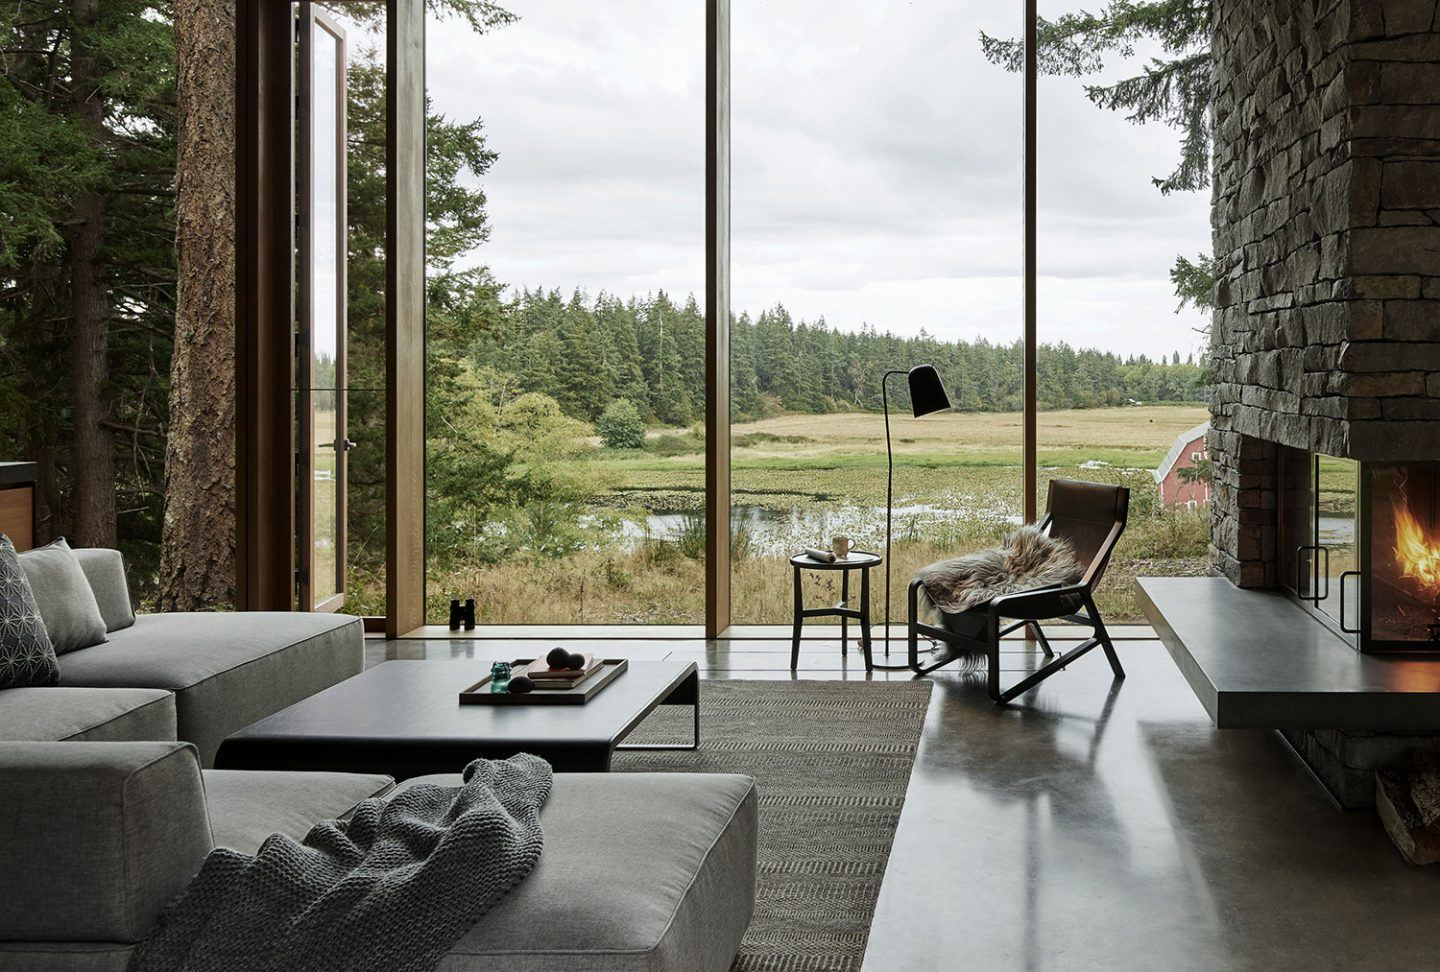 IGNANT-Architecture-MW-Works-Whidbey-Island-01